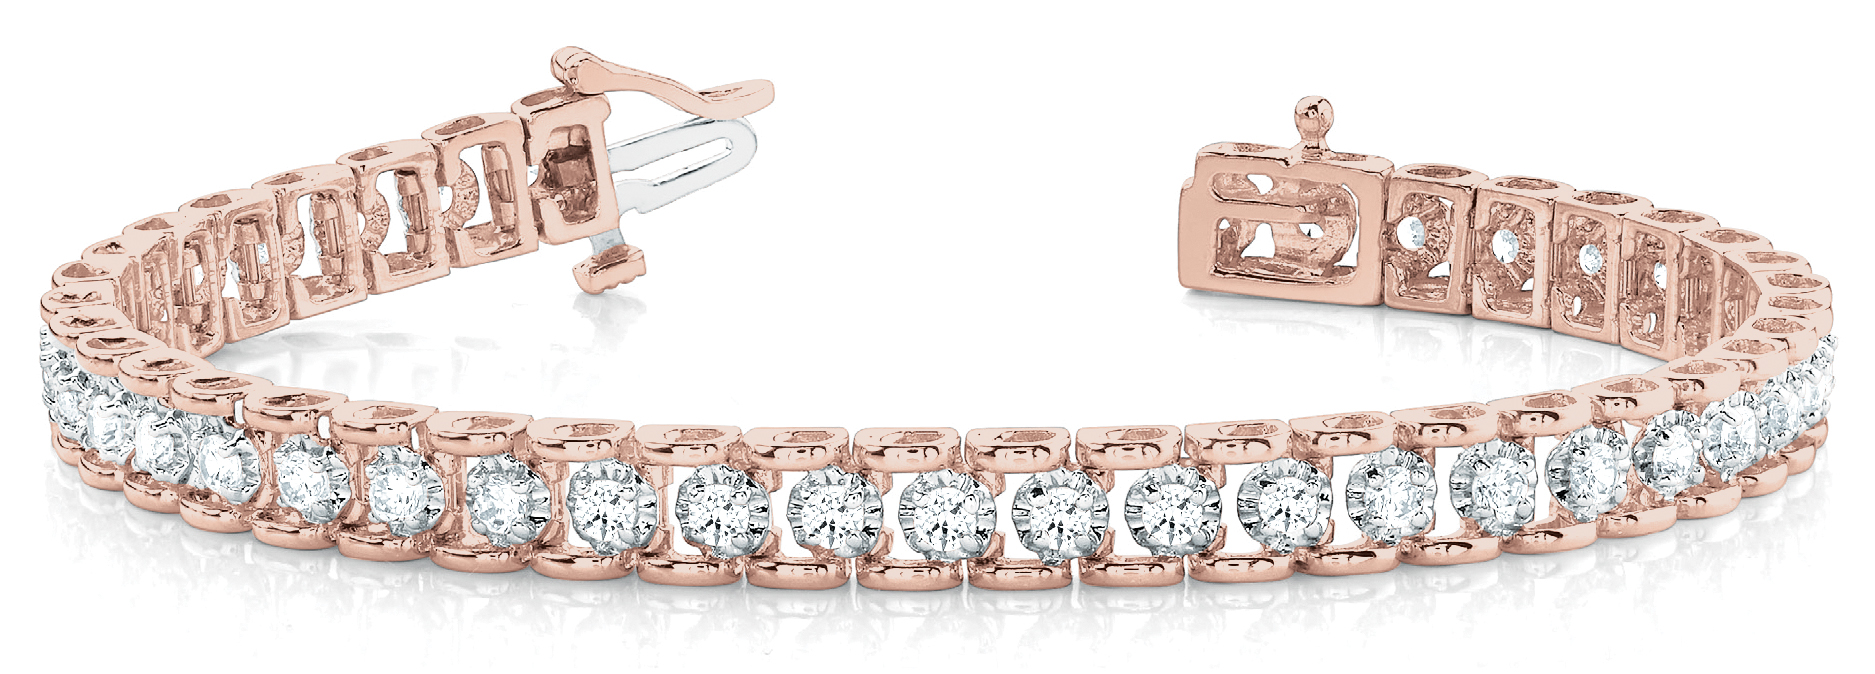 2 Carat Round Diamond Tennis Bracelet Rose and White Gold